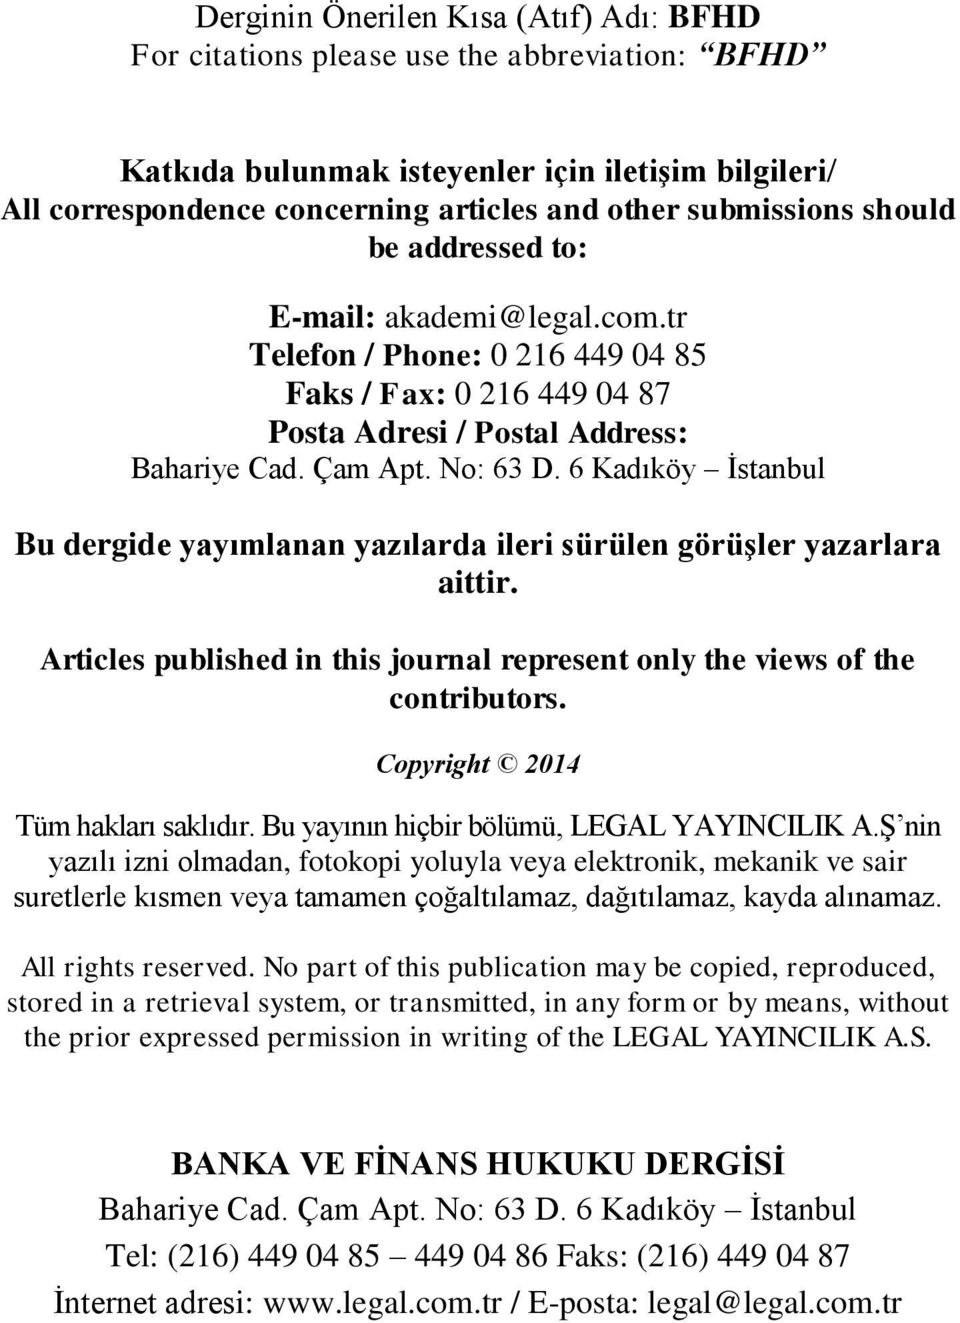 6 Kadıköy Ġstanbul Bu dergide yayımlanan yazılarda ileri sürülen görüģler yazarlara aittir. Articles published in this journal represent only the views of the contributors.